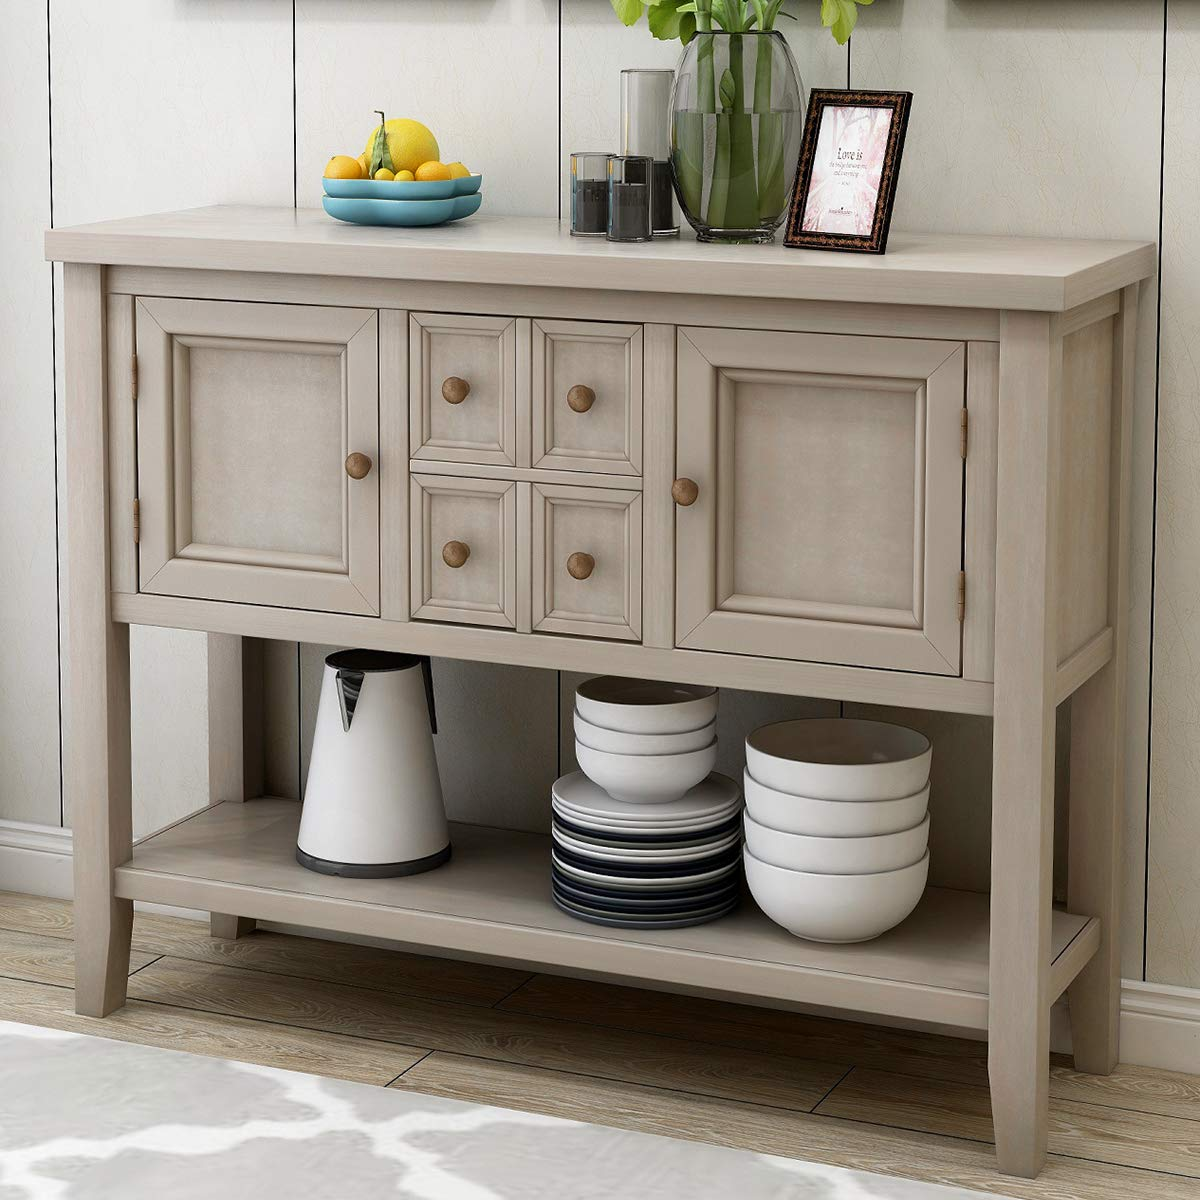 Console Table, Buffet Table Sideboard with Four Storage Drawers and Two Cabinets and Bottom Shelf (Ship from USA Warehouse) by SILAMI